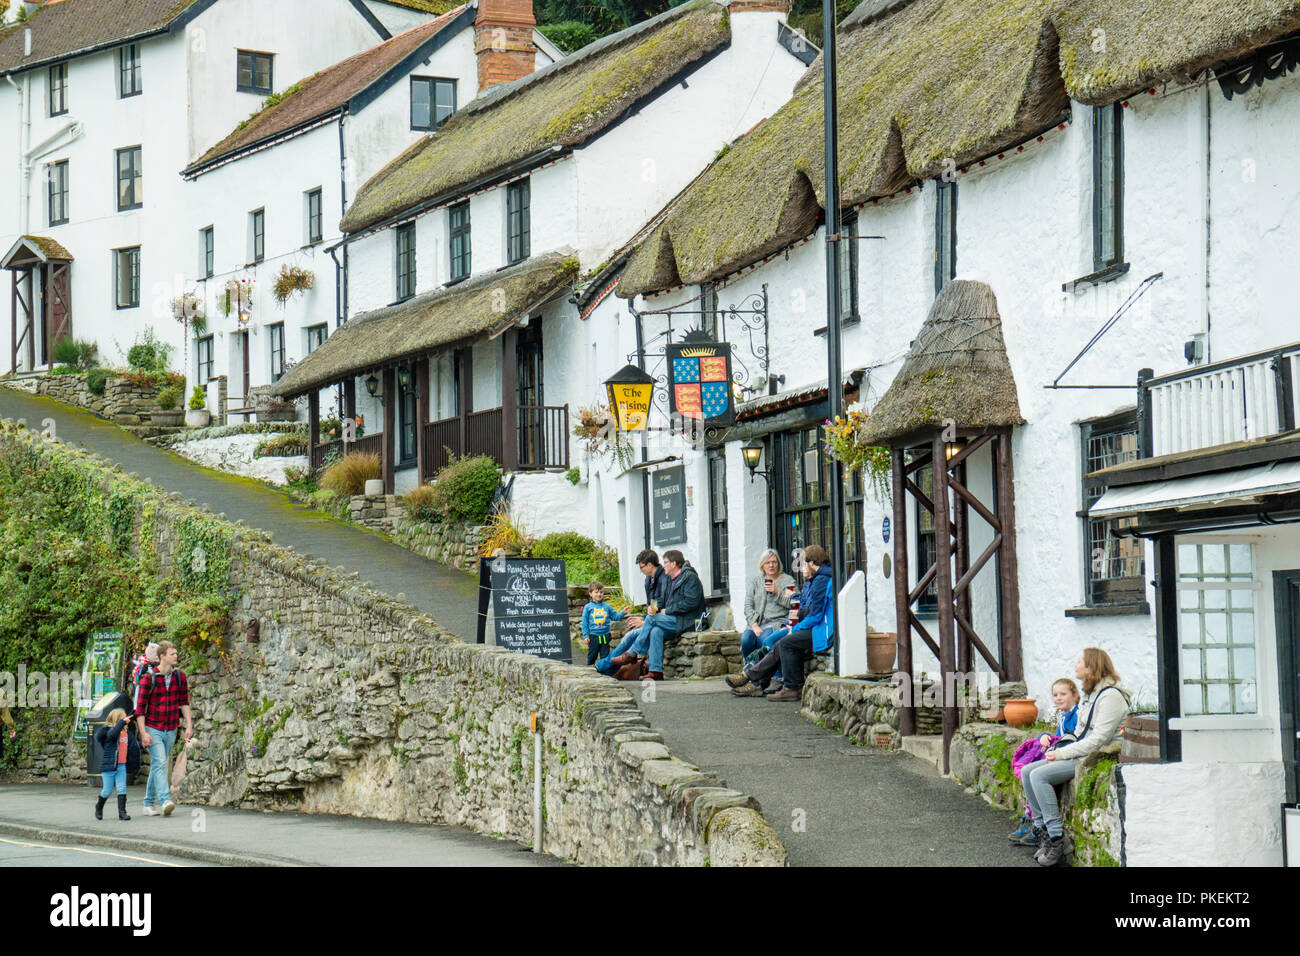 Historic cottages and the14th-century thatched roof hotel the Rising Sun Inn, Lynmouth, Devon, England, UK - Stock Image